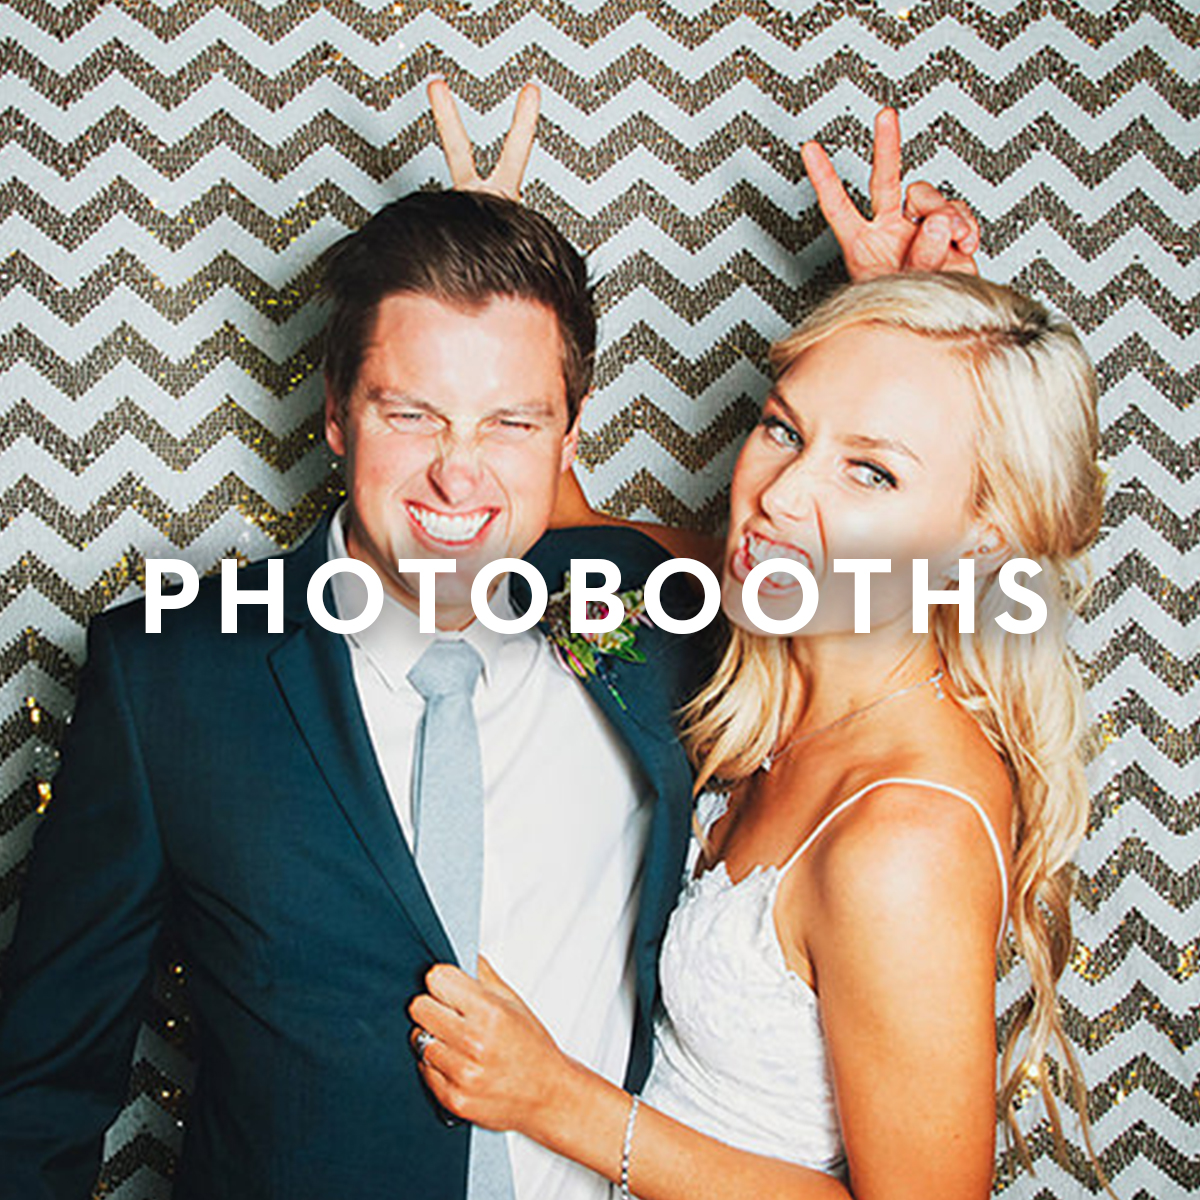 PHOTOBOOTHS.jpg